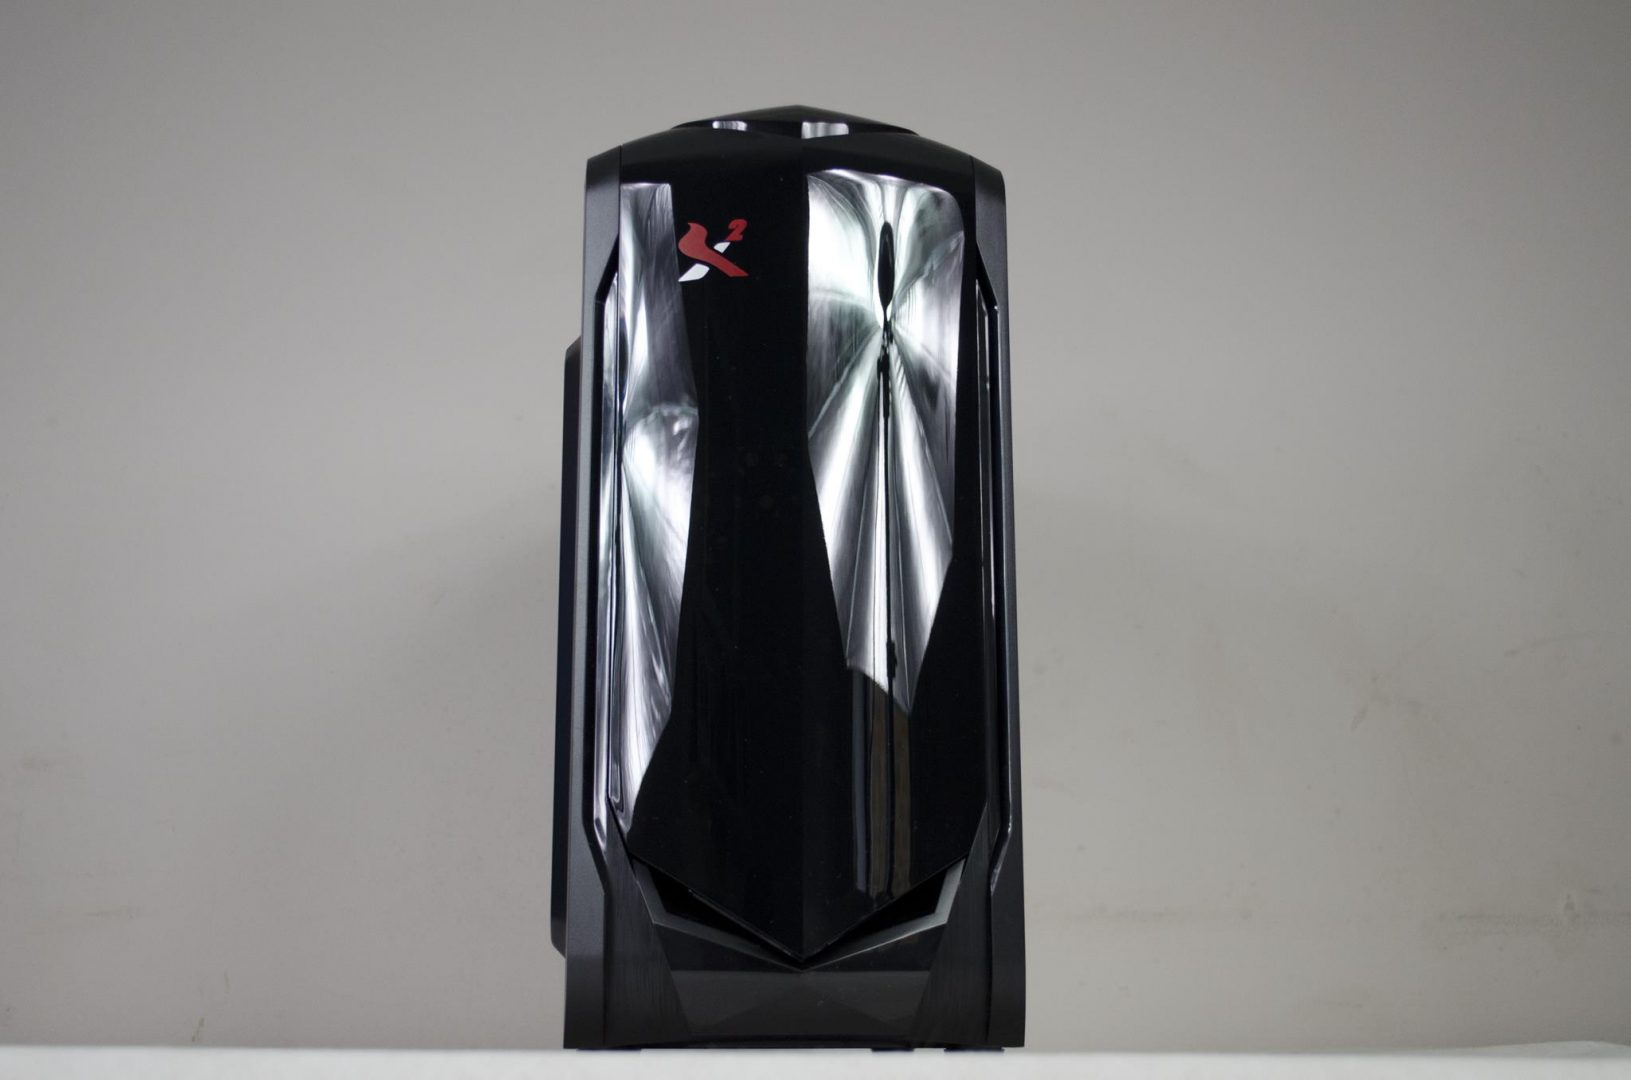 X2 SPITZER 22 PC Case Review